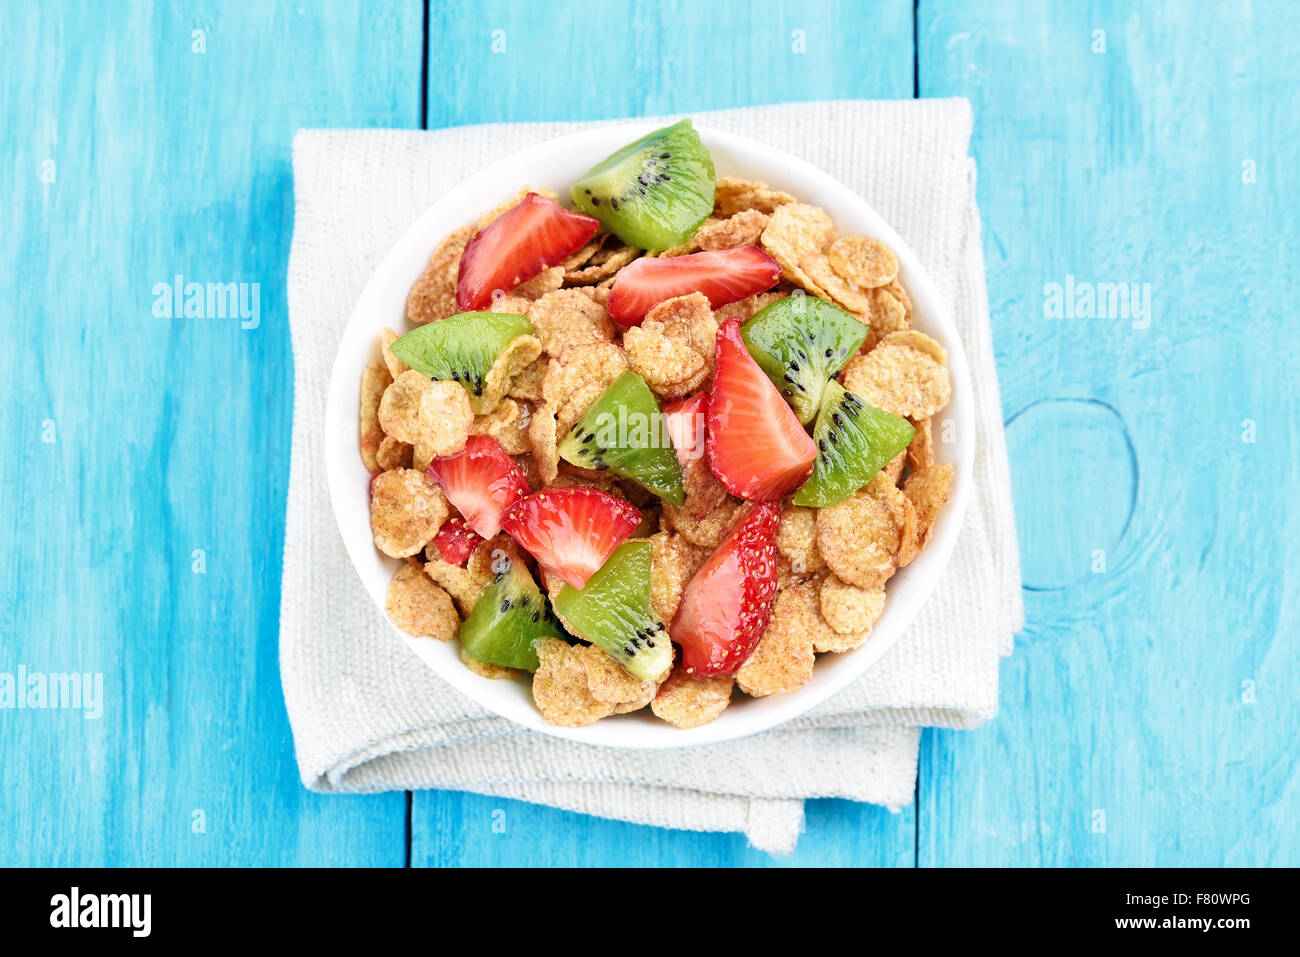 Cornflakes with fresh strawberry and kiwi, top view - Stock Image